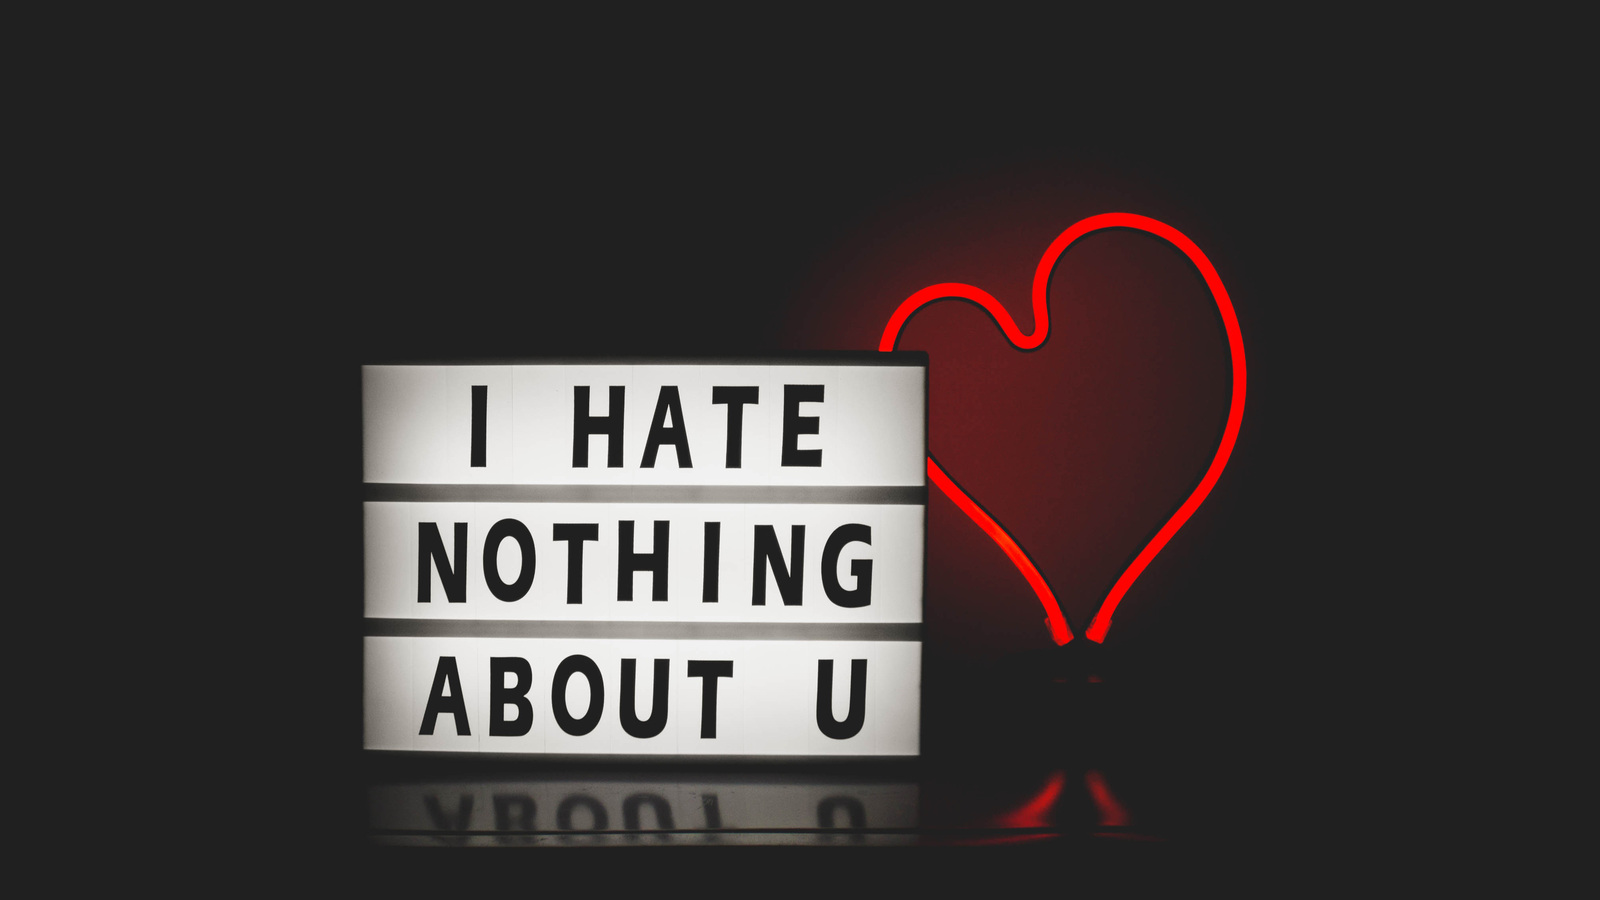 i-hate-nothing-about-you-n4.jpg